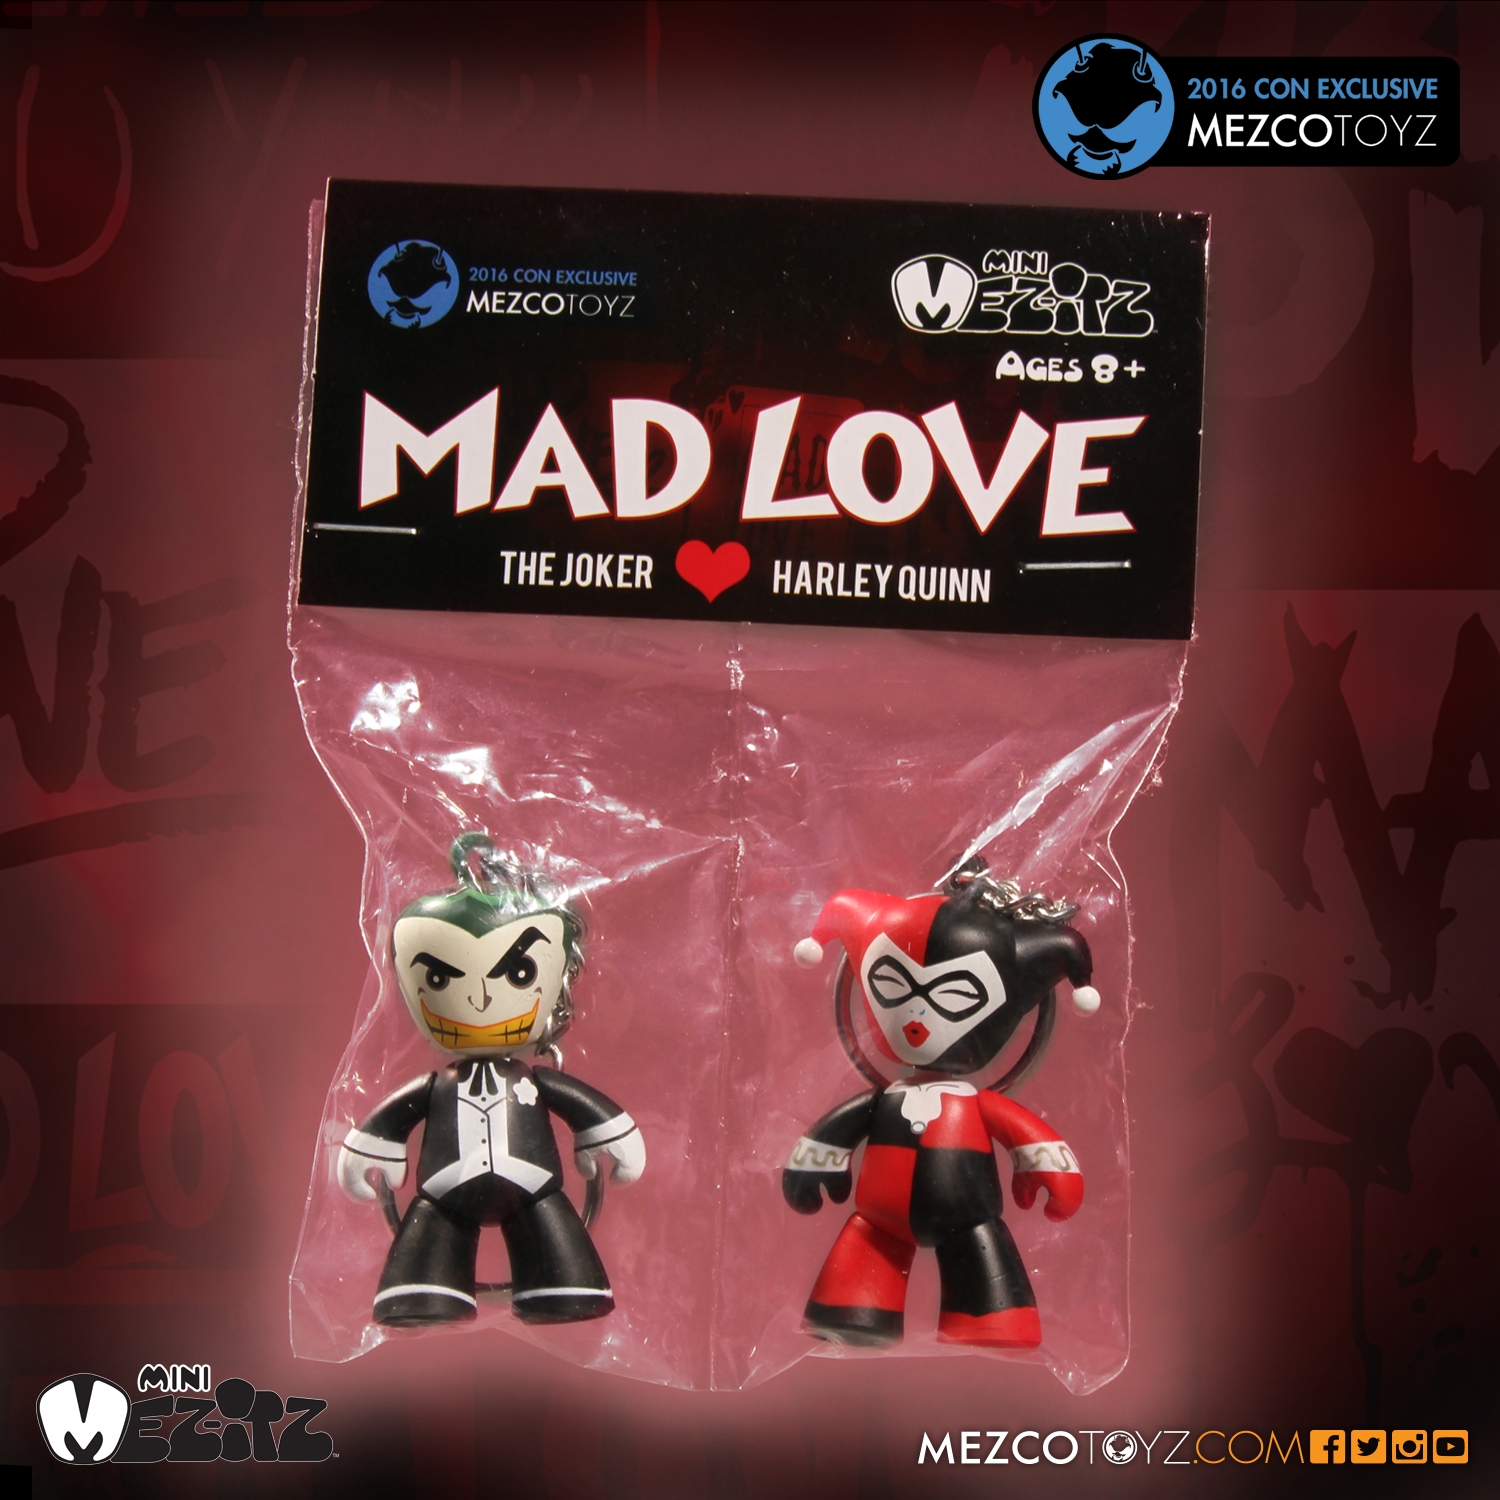 2016 Mezco Toyz Con Exclusives First Look: Mad Love Mez-itz Packaging